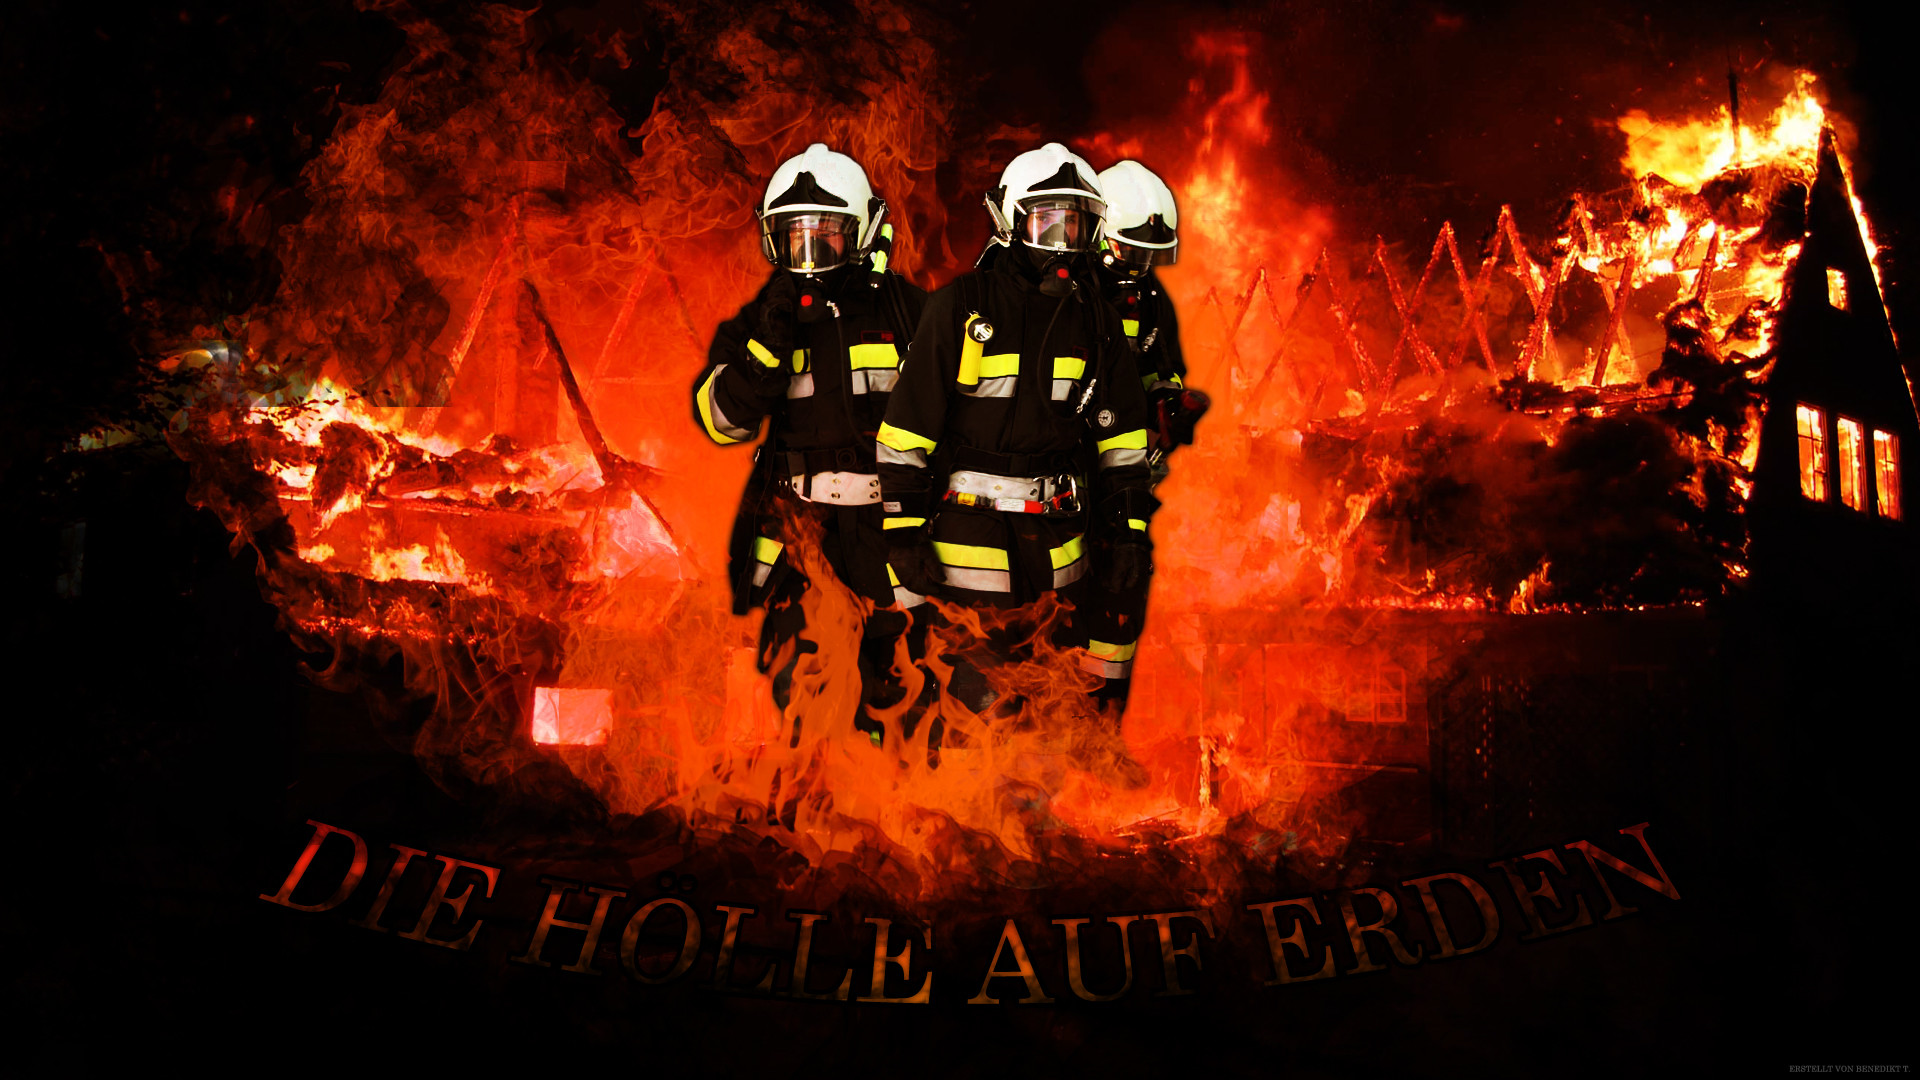 2197x1463 Get Free High Quality HD Wallpapers Iphone Wallpaper Firefighter